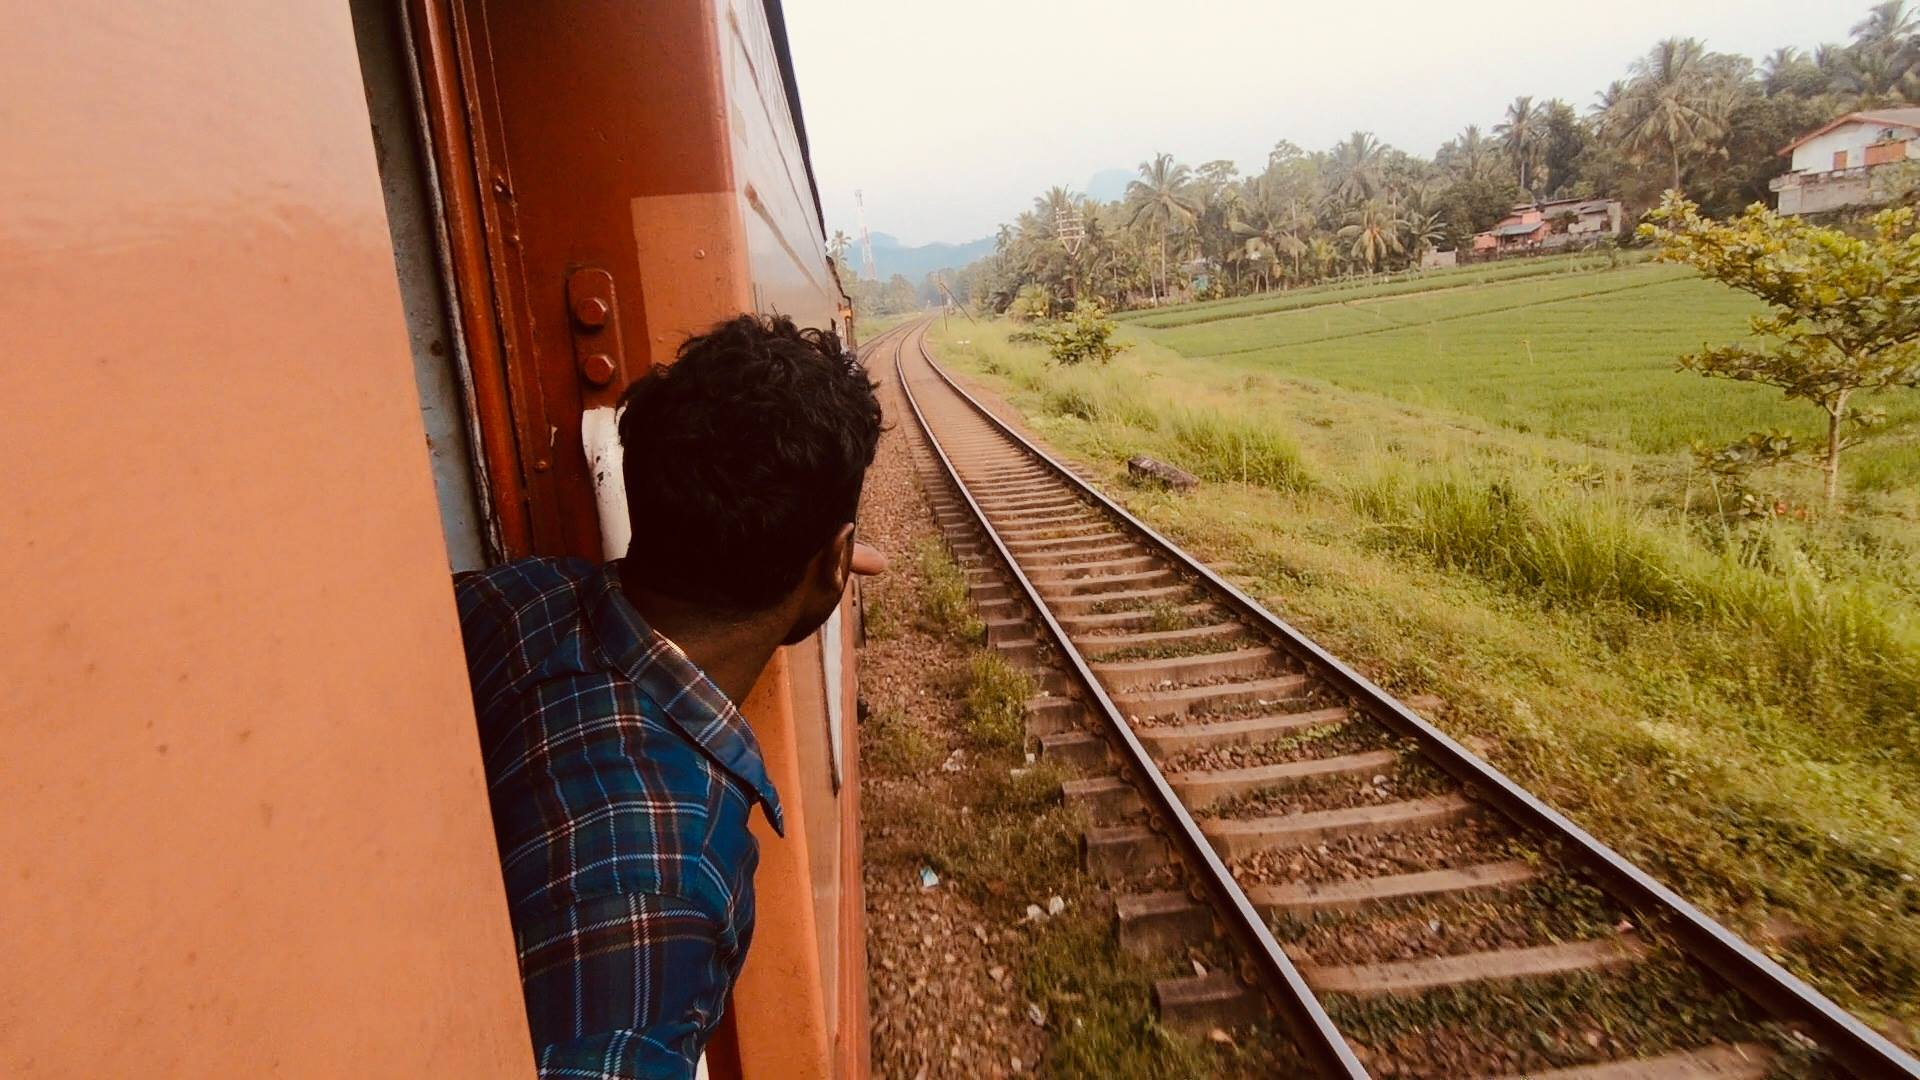 Riding the train in Sri Lanka.